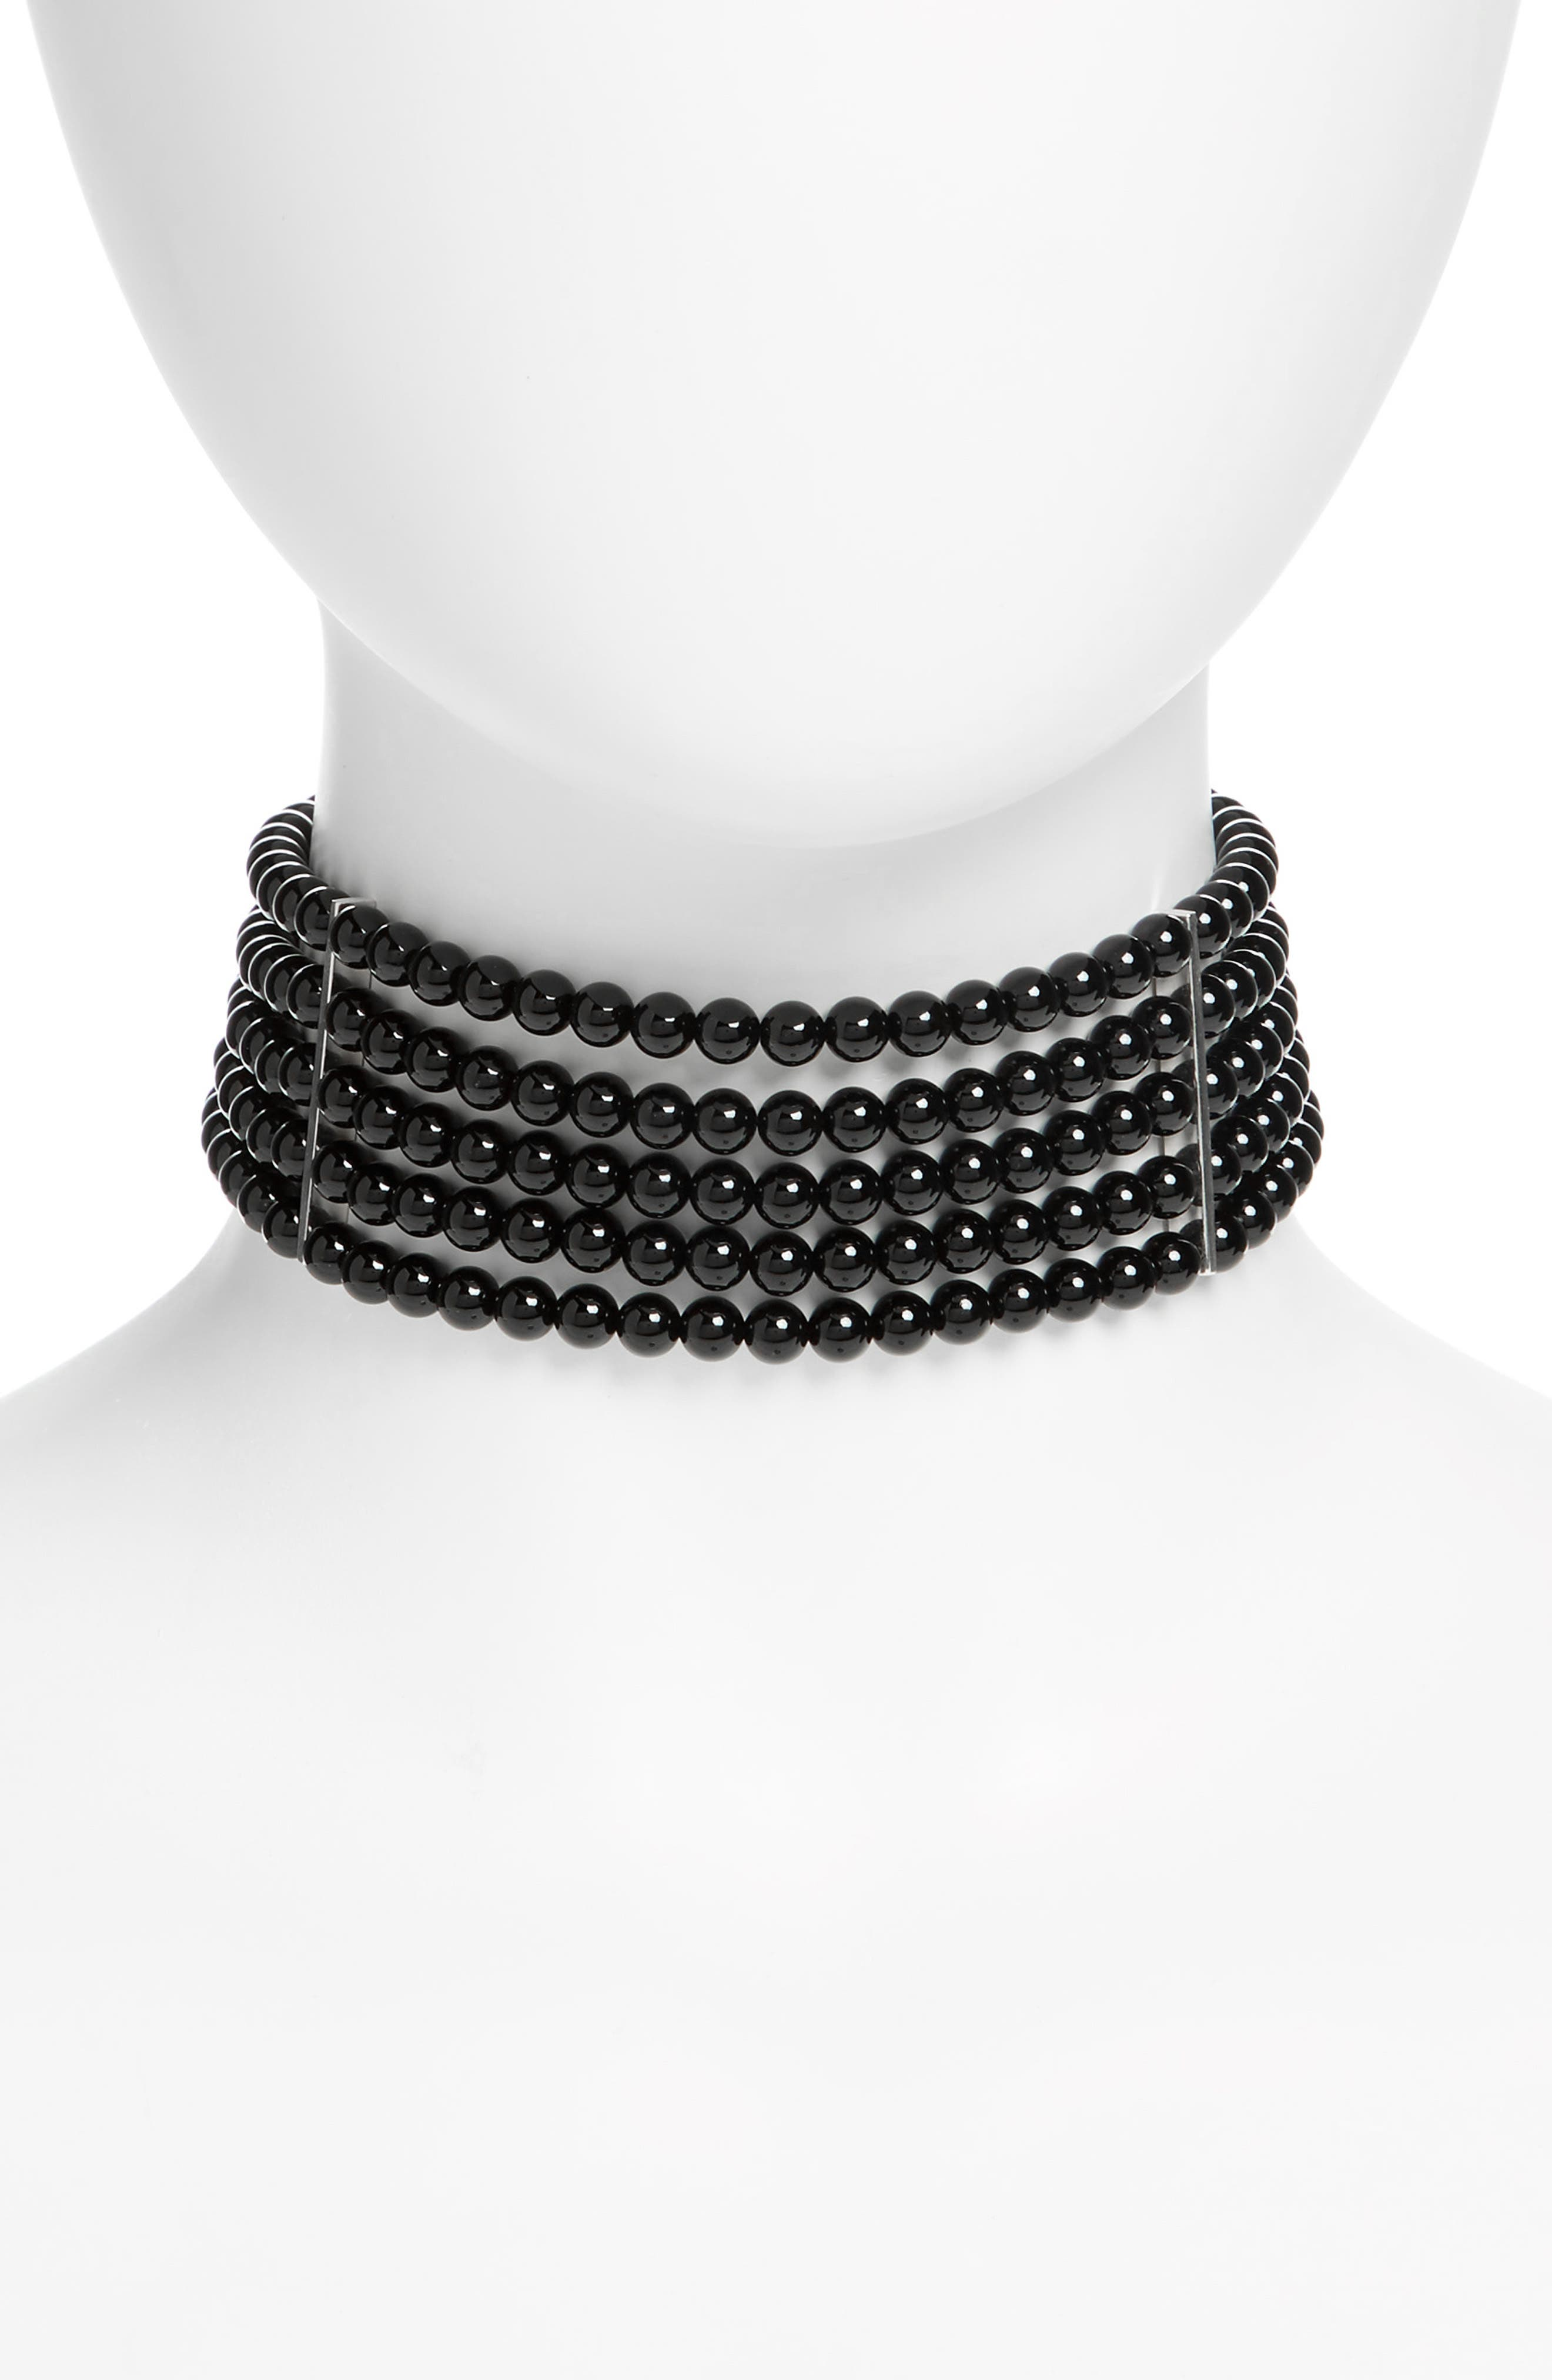 Onyx & Sterling Silver Choker,                             Alternate thumbnail 2, color,                             STERLING SILVER